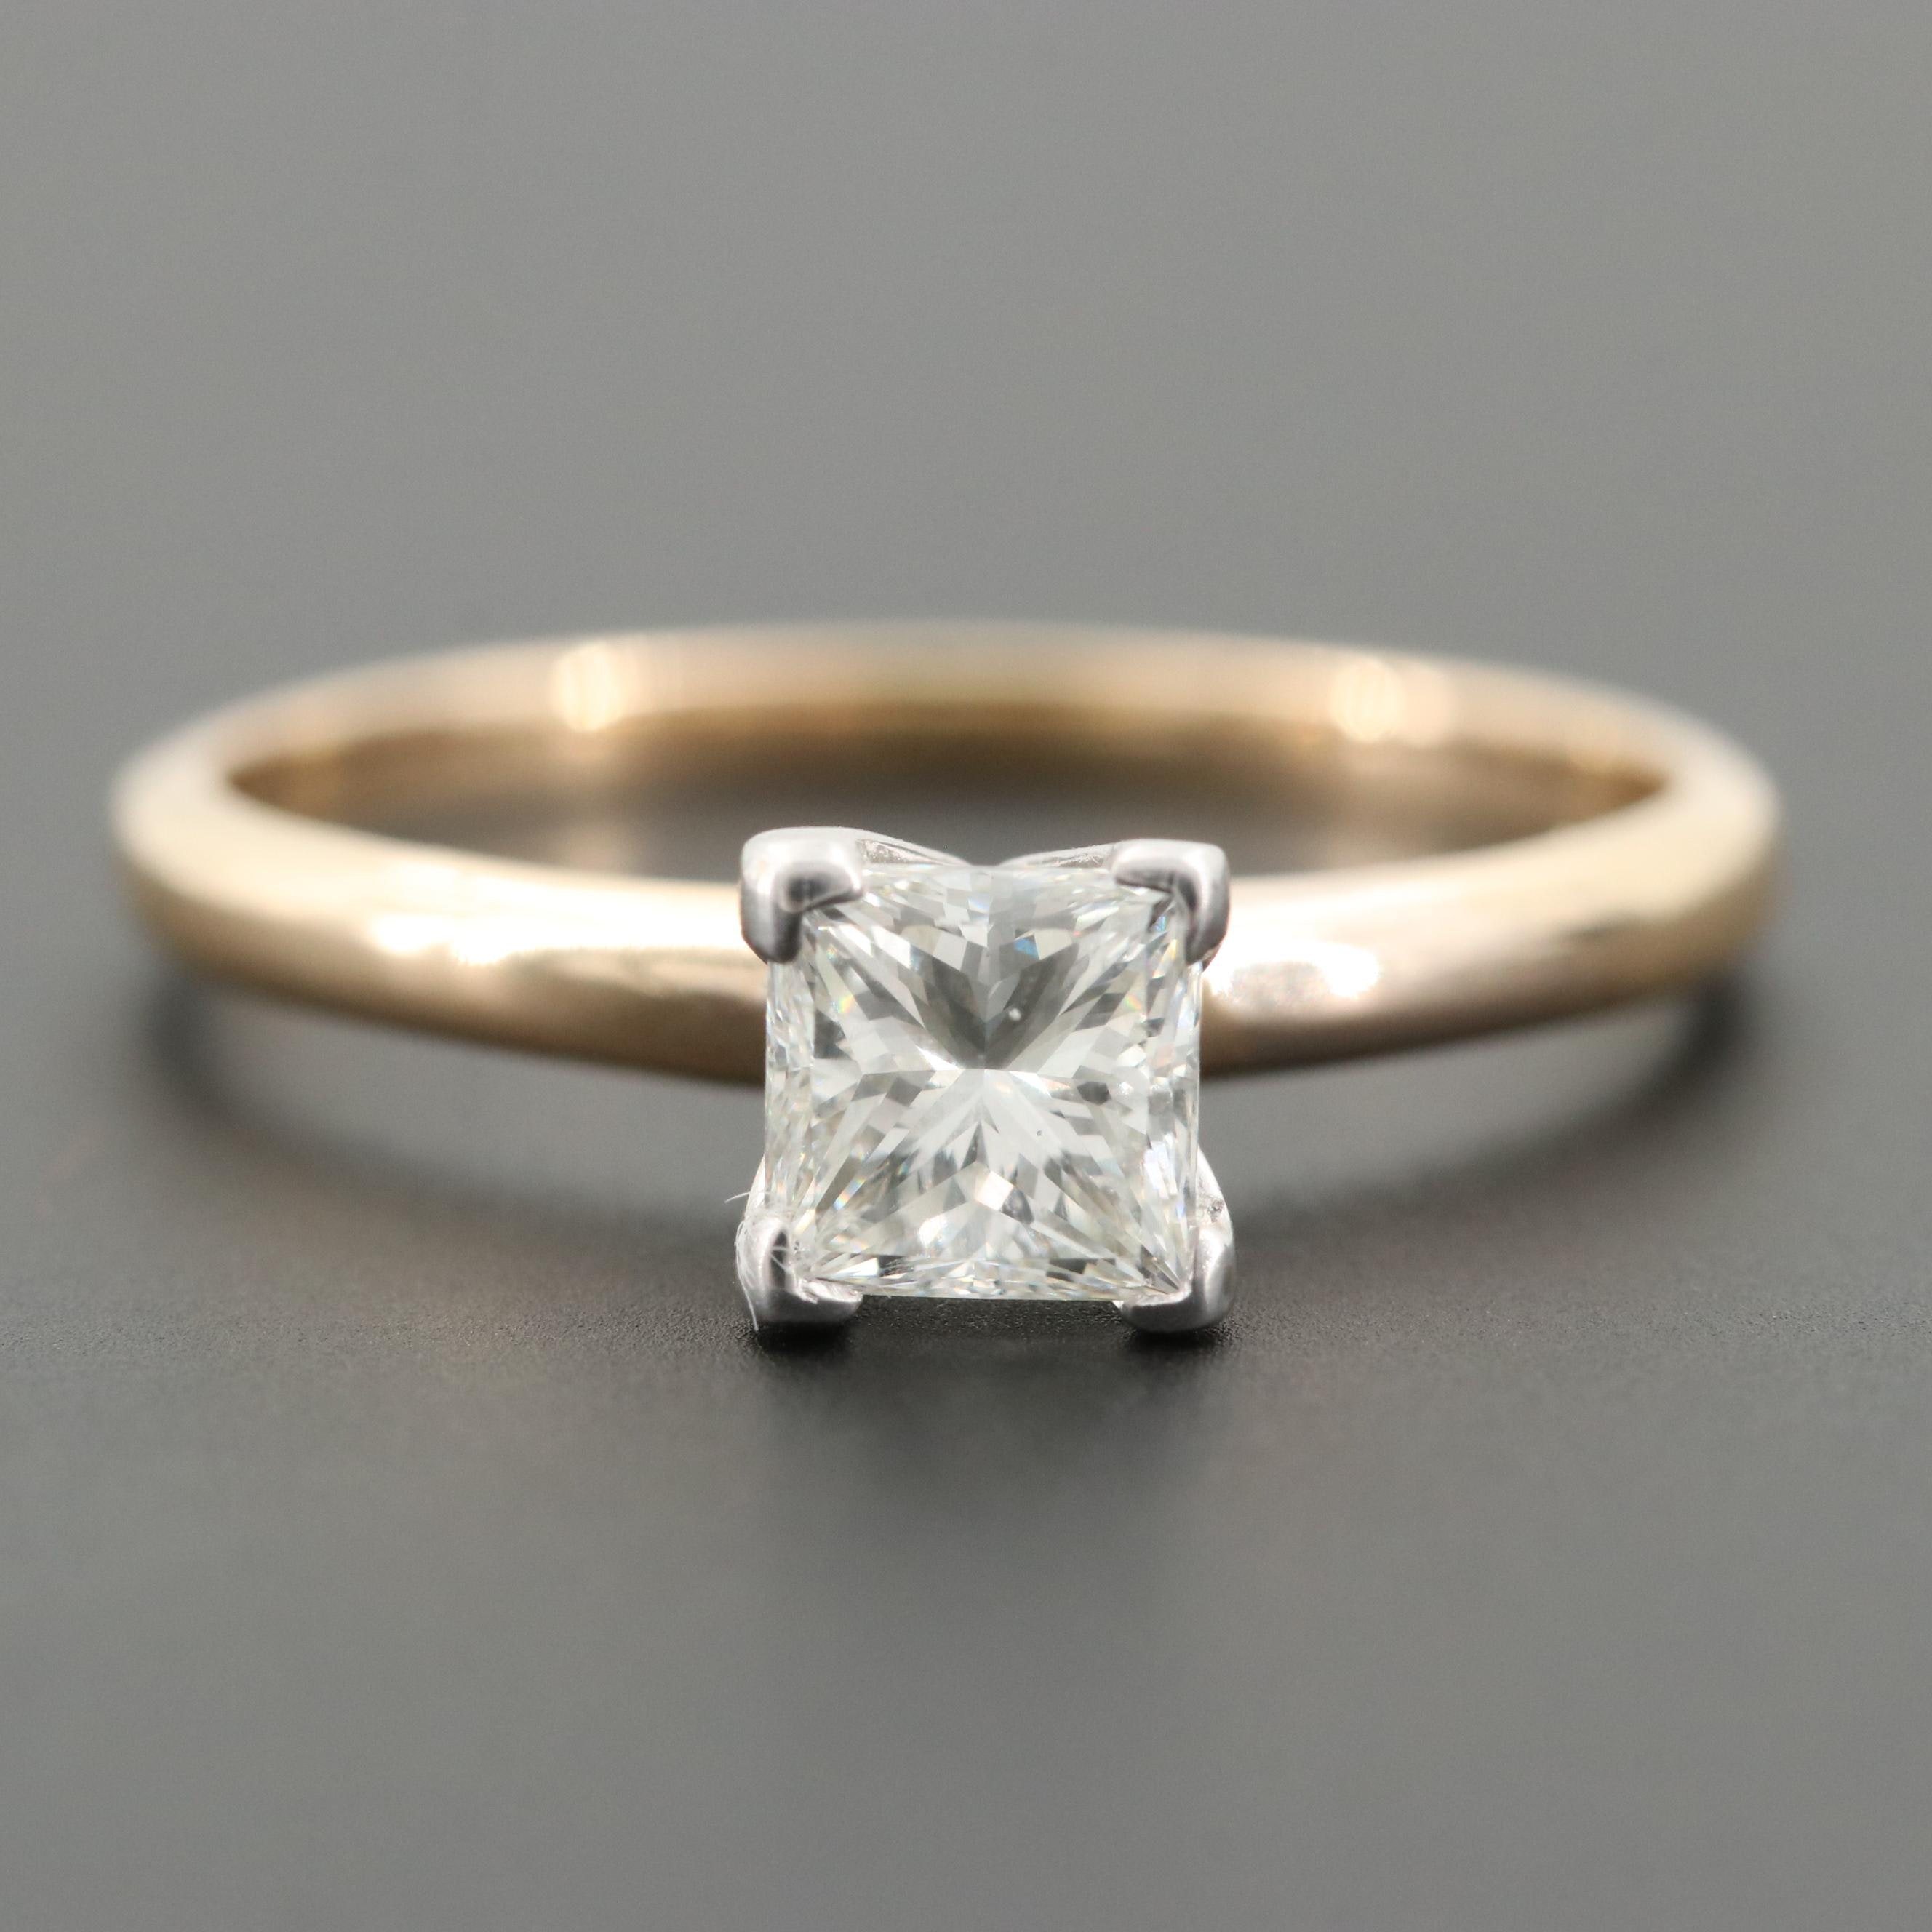 14K White Gold Diamond Solitaire Ring with GIA Dossier Report